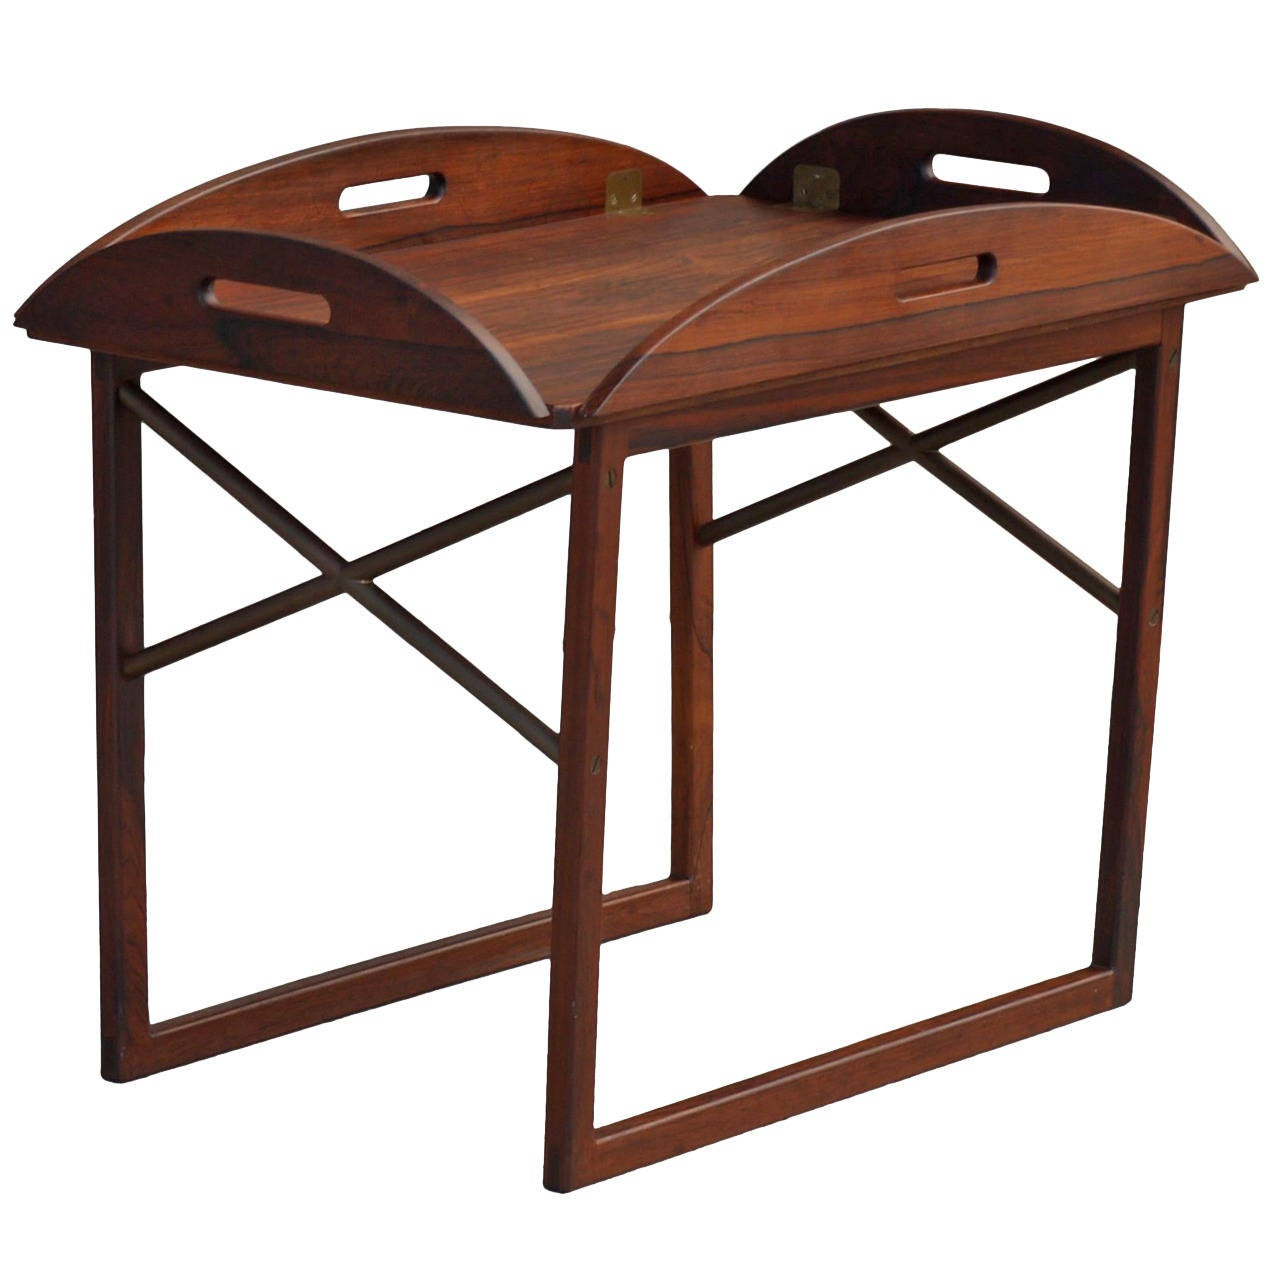 Svend Langkilde Tray Table in Rosewood by Illums Bolighus in Denmark